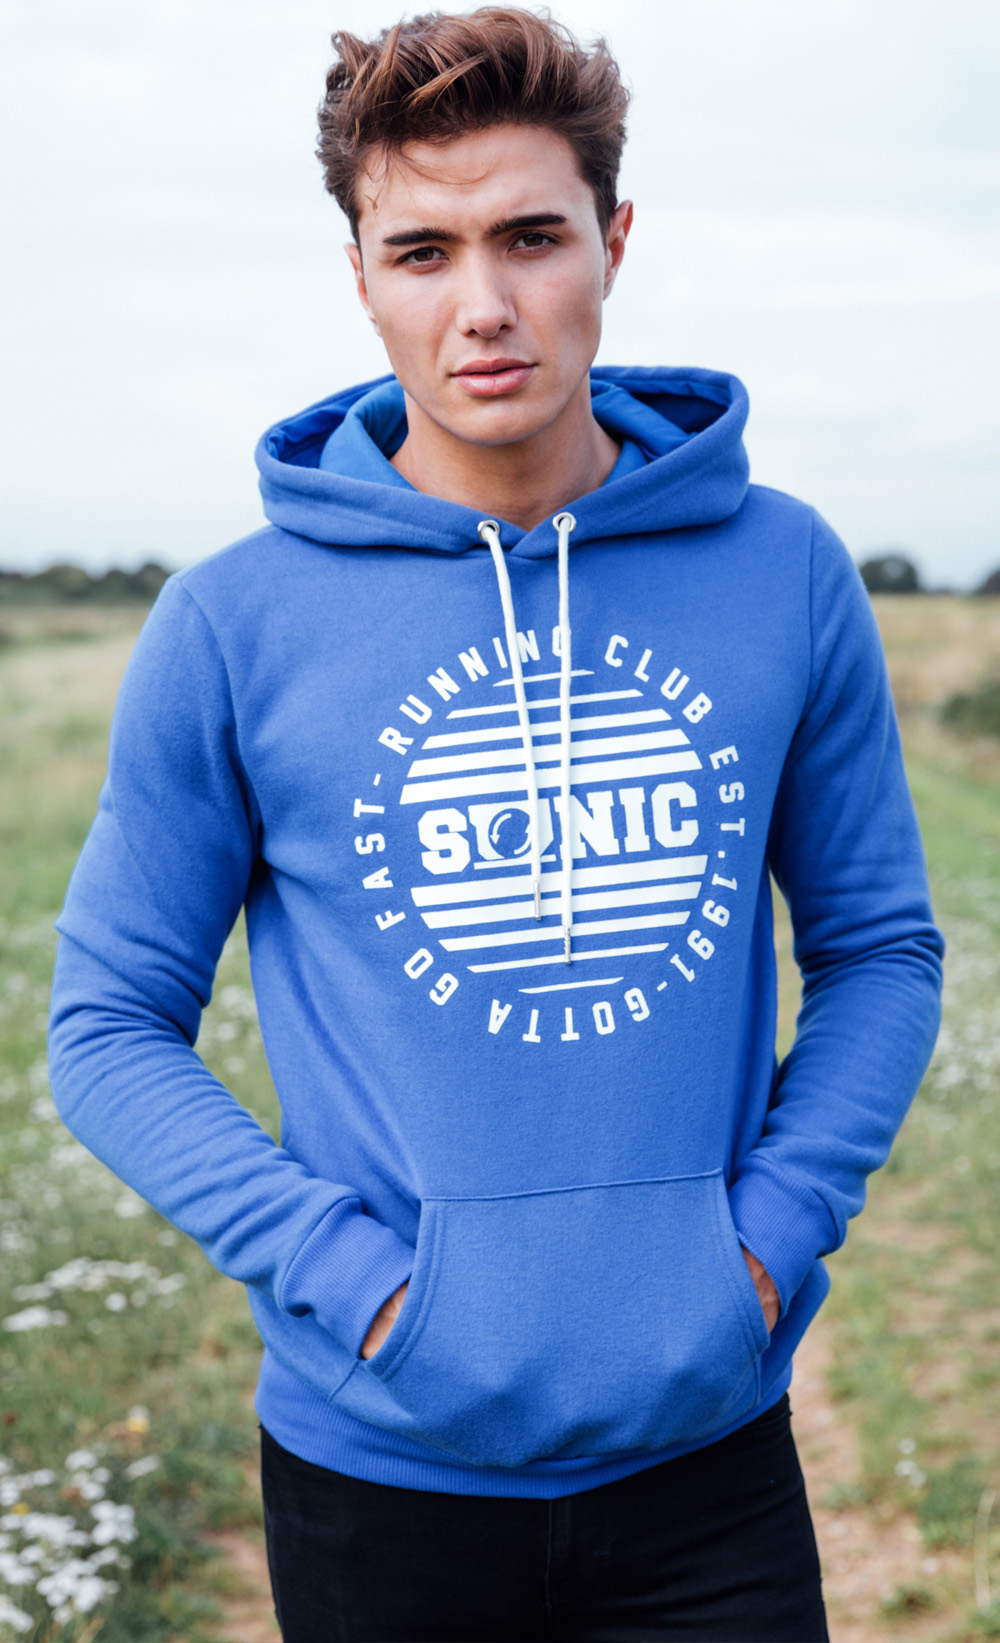 Sonic the hedgehog hoodies